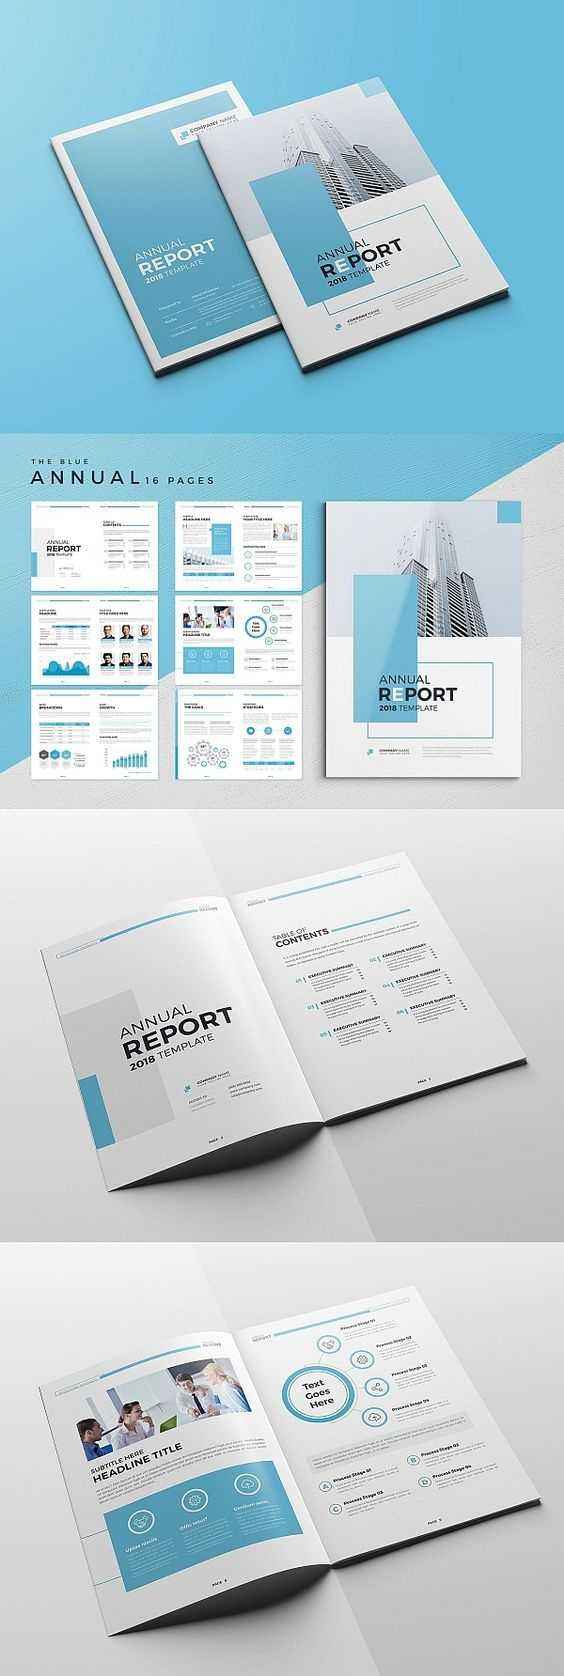 Annual #report #brochure #design Professional Report throughout Annual Report Template Word Free Download